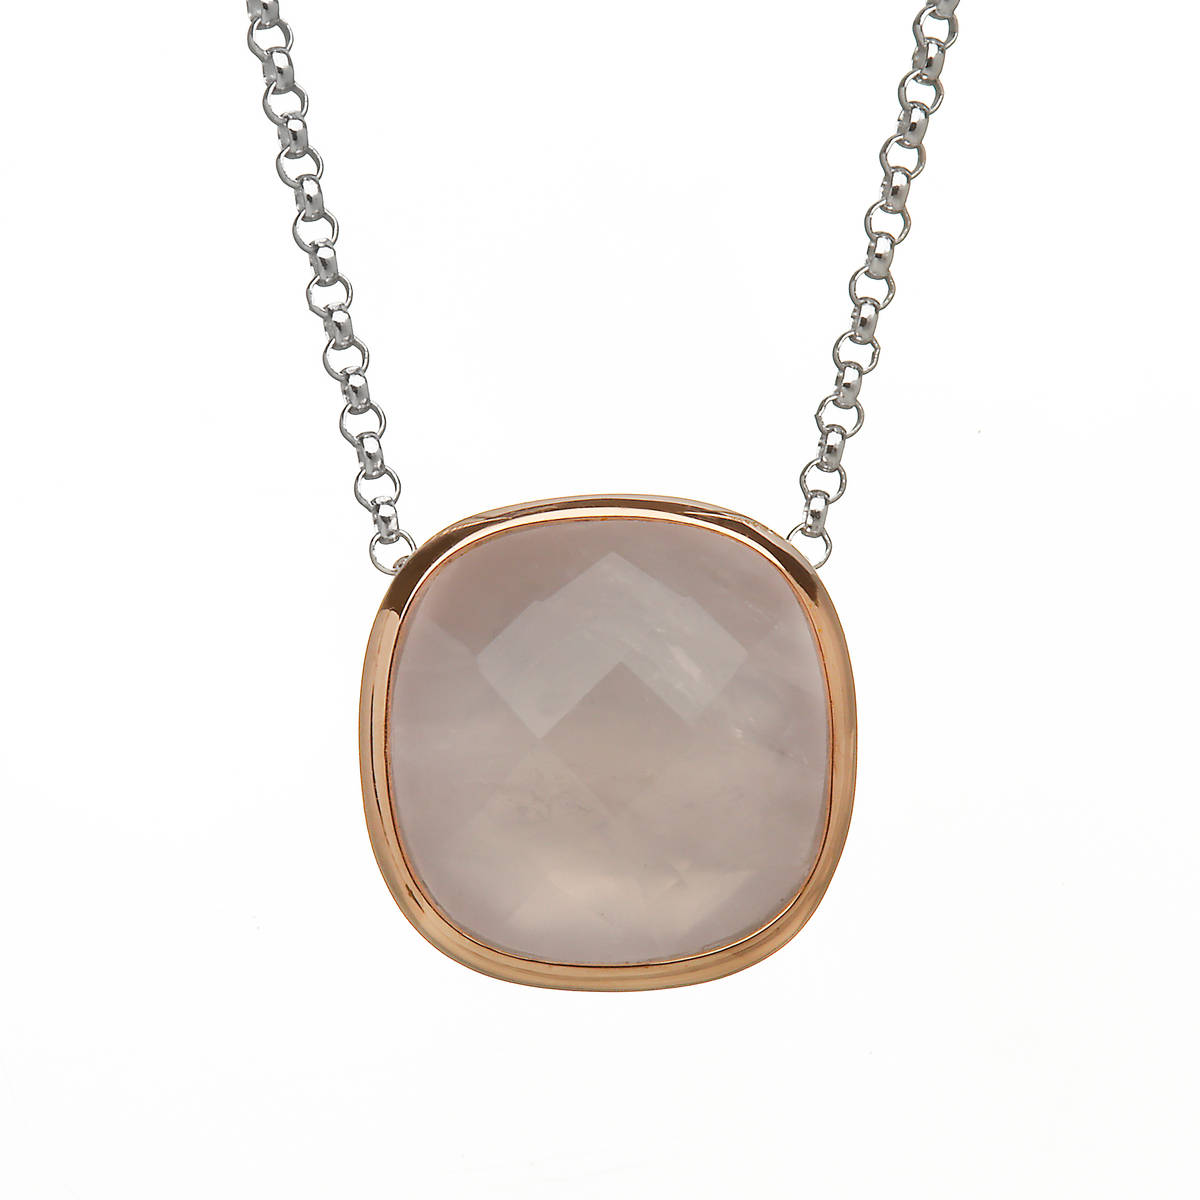 House of Lor silver/rose gold pendant with rose quartz stone outer rim made from rare Irish gold